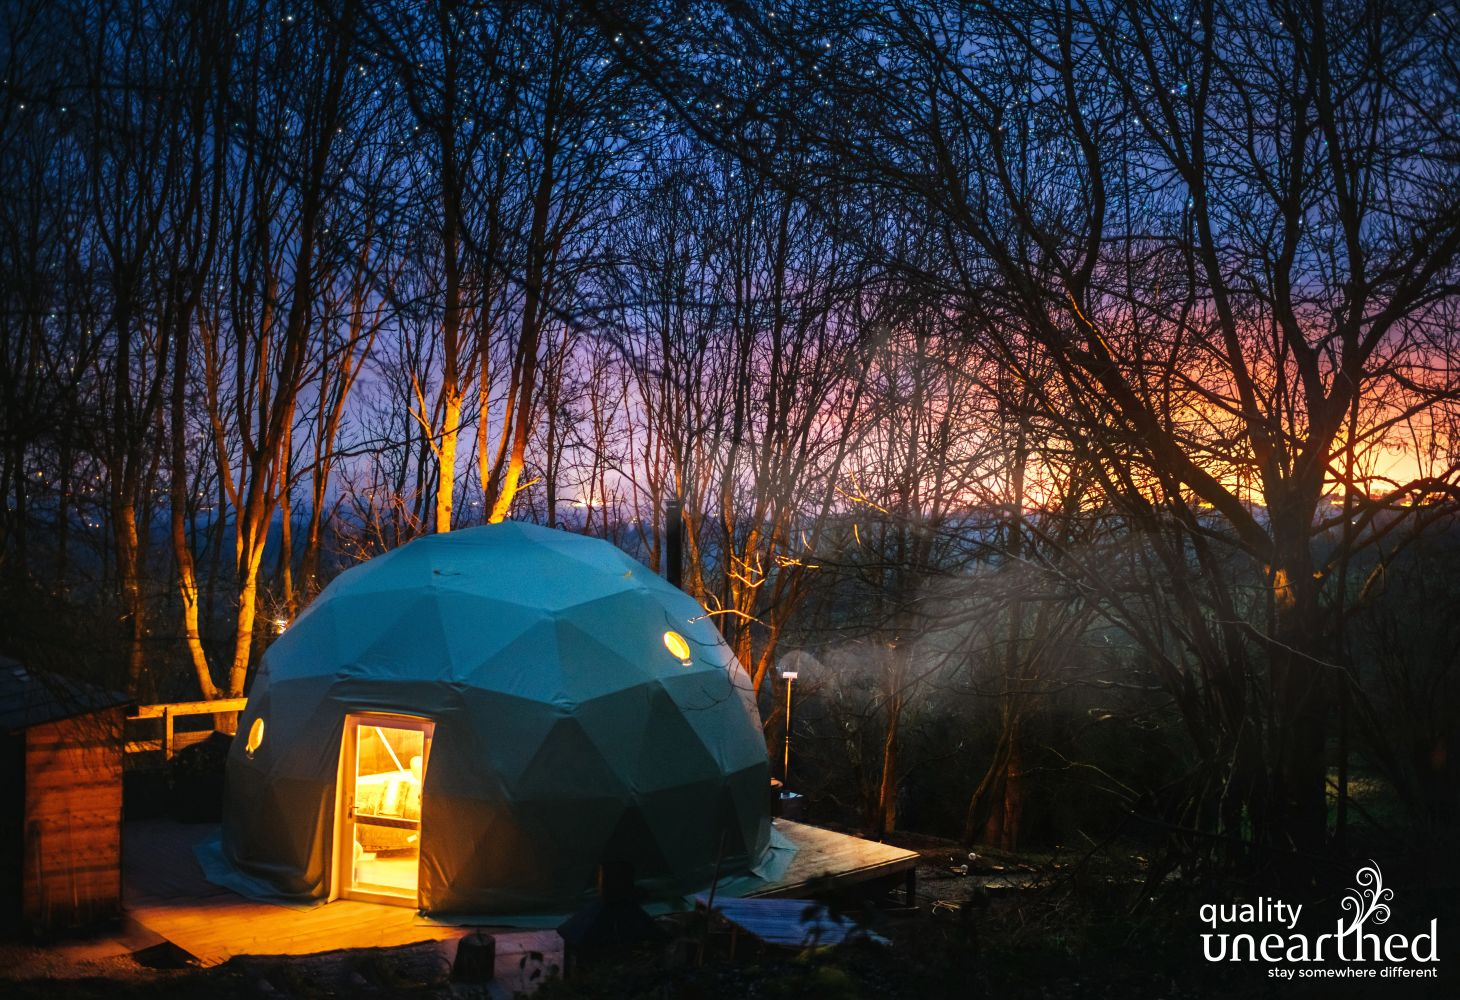 The sun sets through the Shropshire woods surrounding the geodome